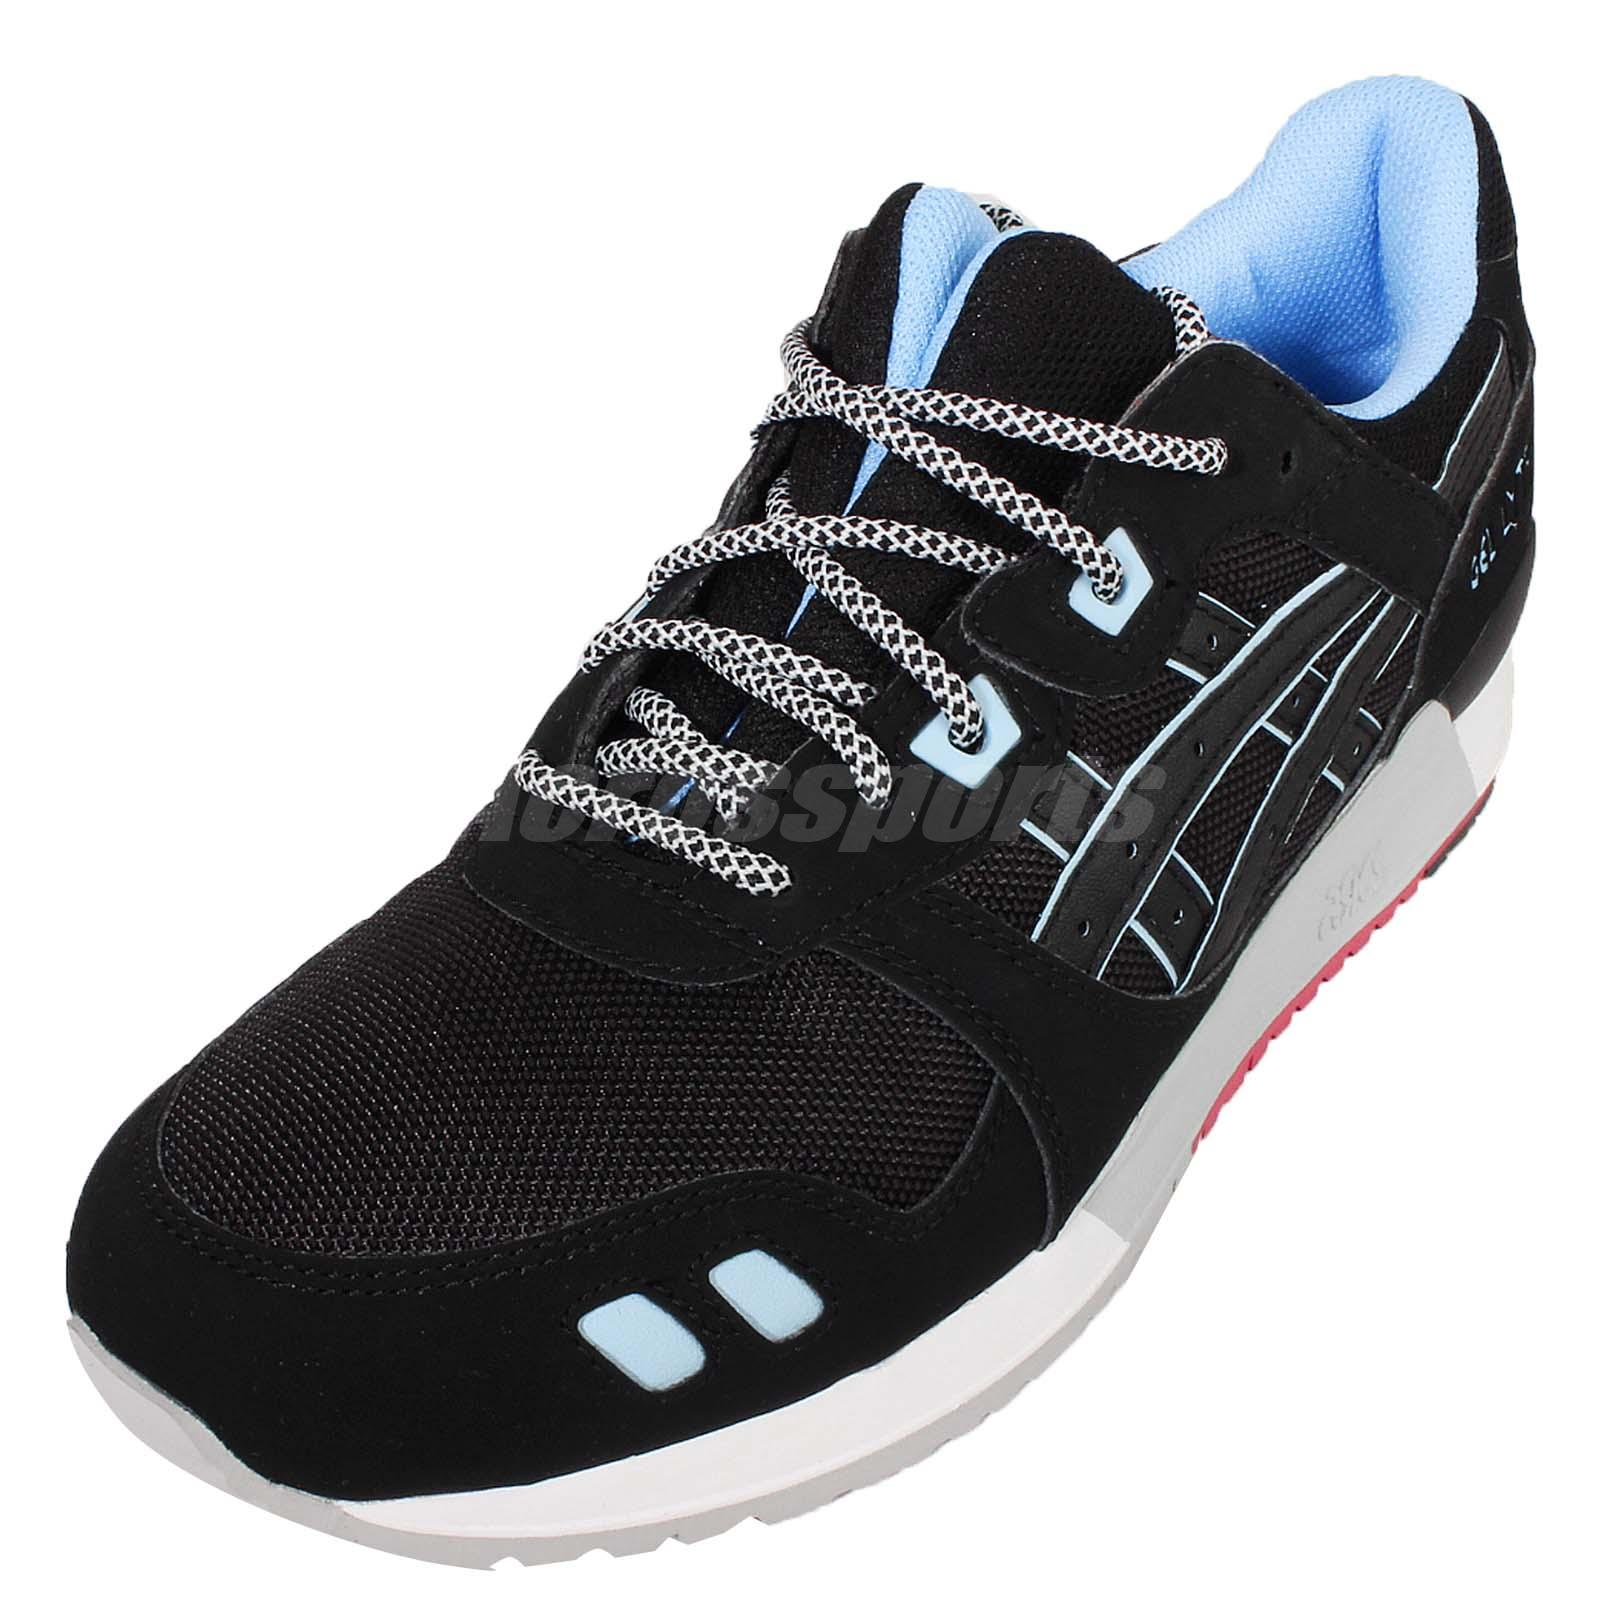 sports shoes ff341 ec869 Details about Asics Tiger Gel-Lyte III 3 Future Pack Black Blue Mens Shoes  Sneakers H637Y-9090